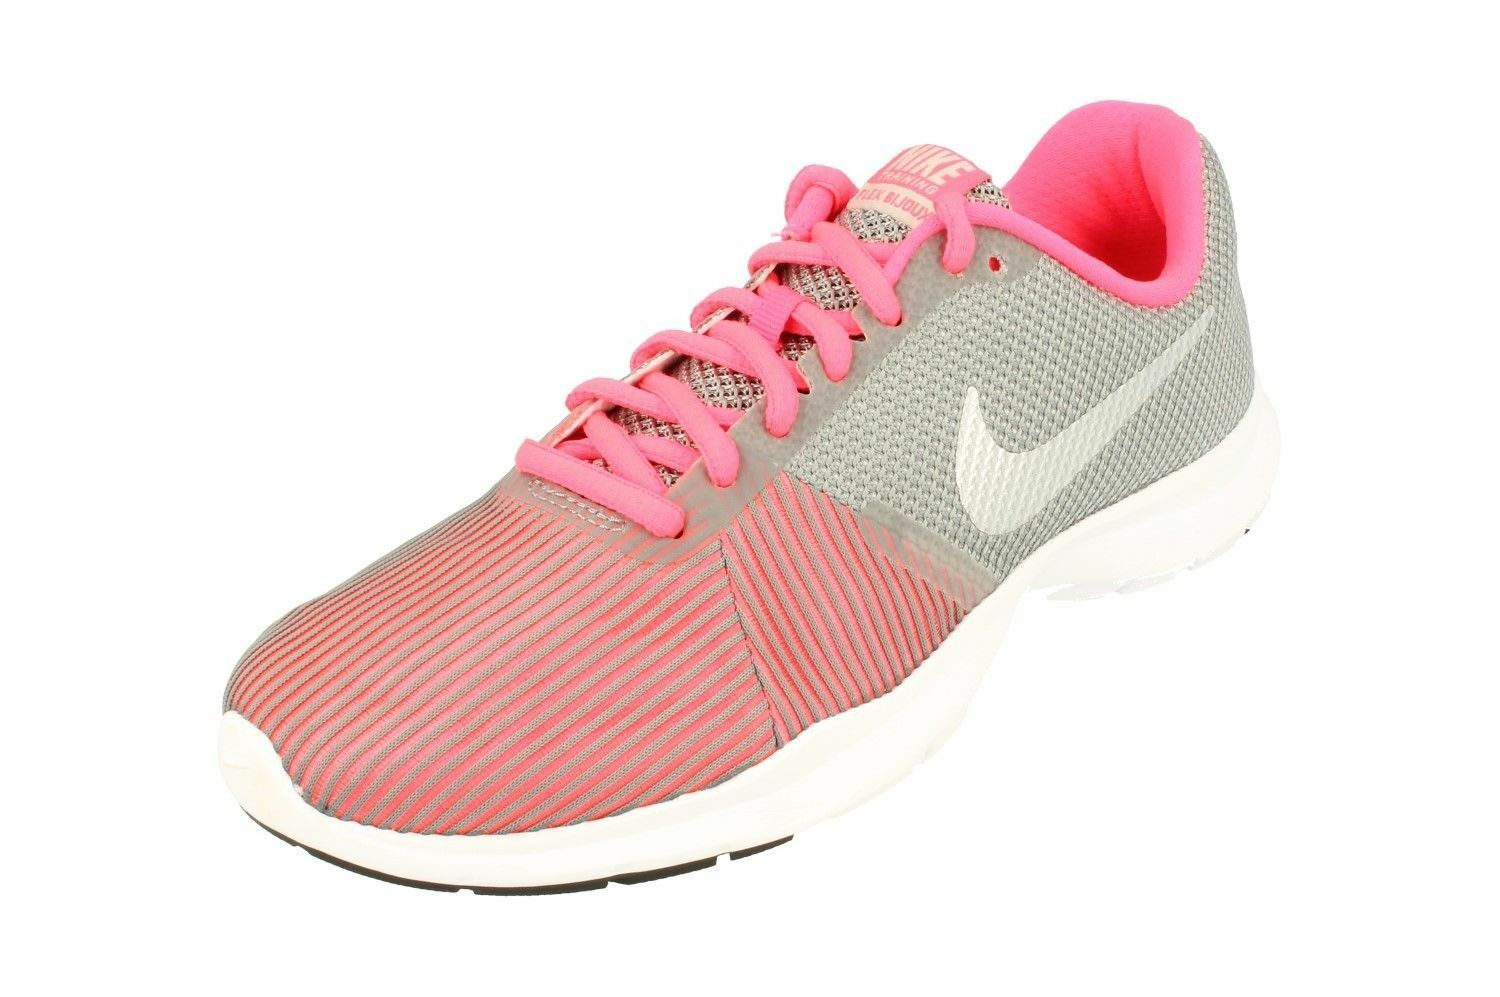 Nike Flex Bijoux Running Trainers 881863 006 Sneakers shoes UK 7.5 EU 42